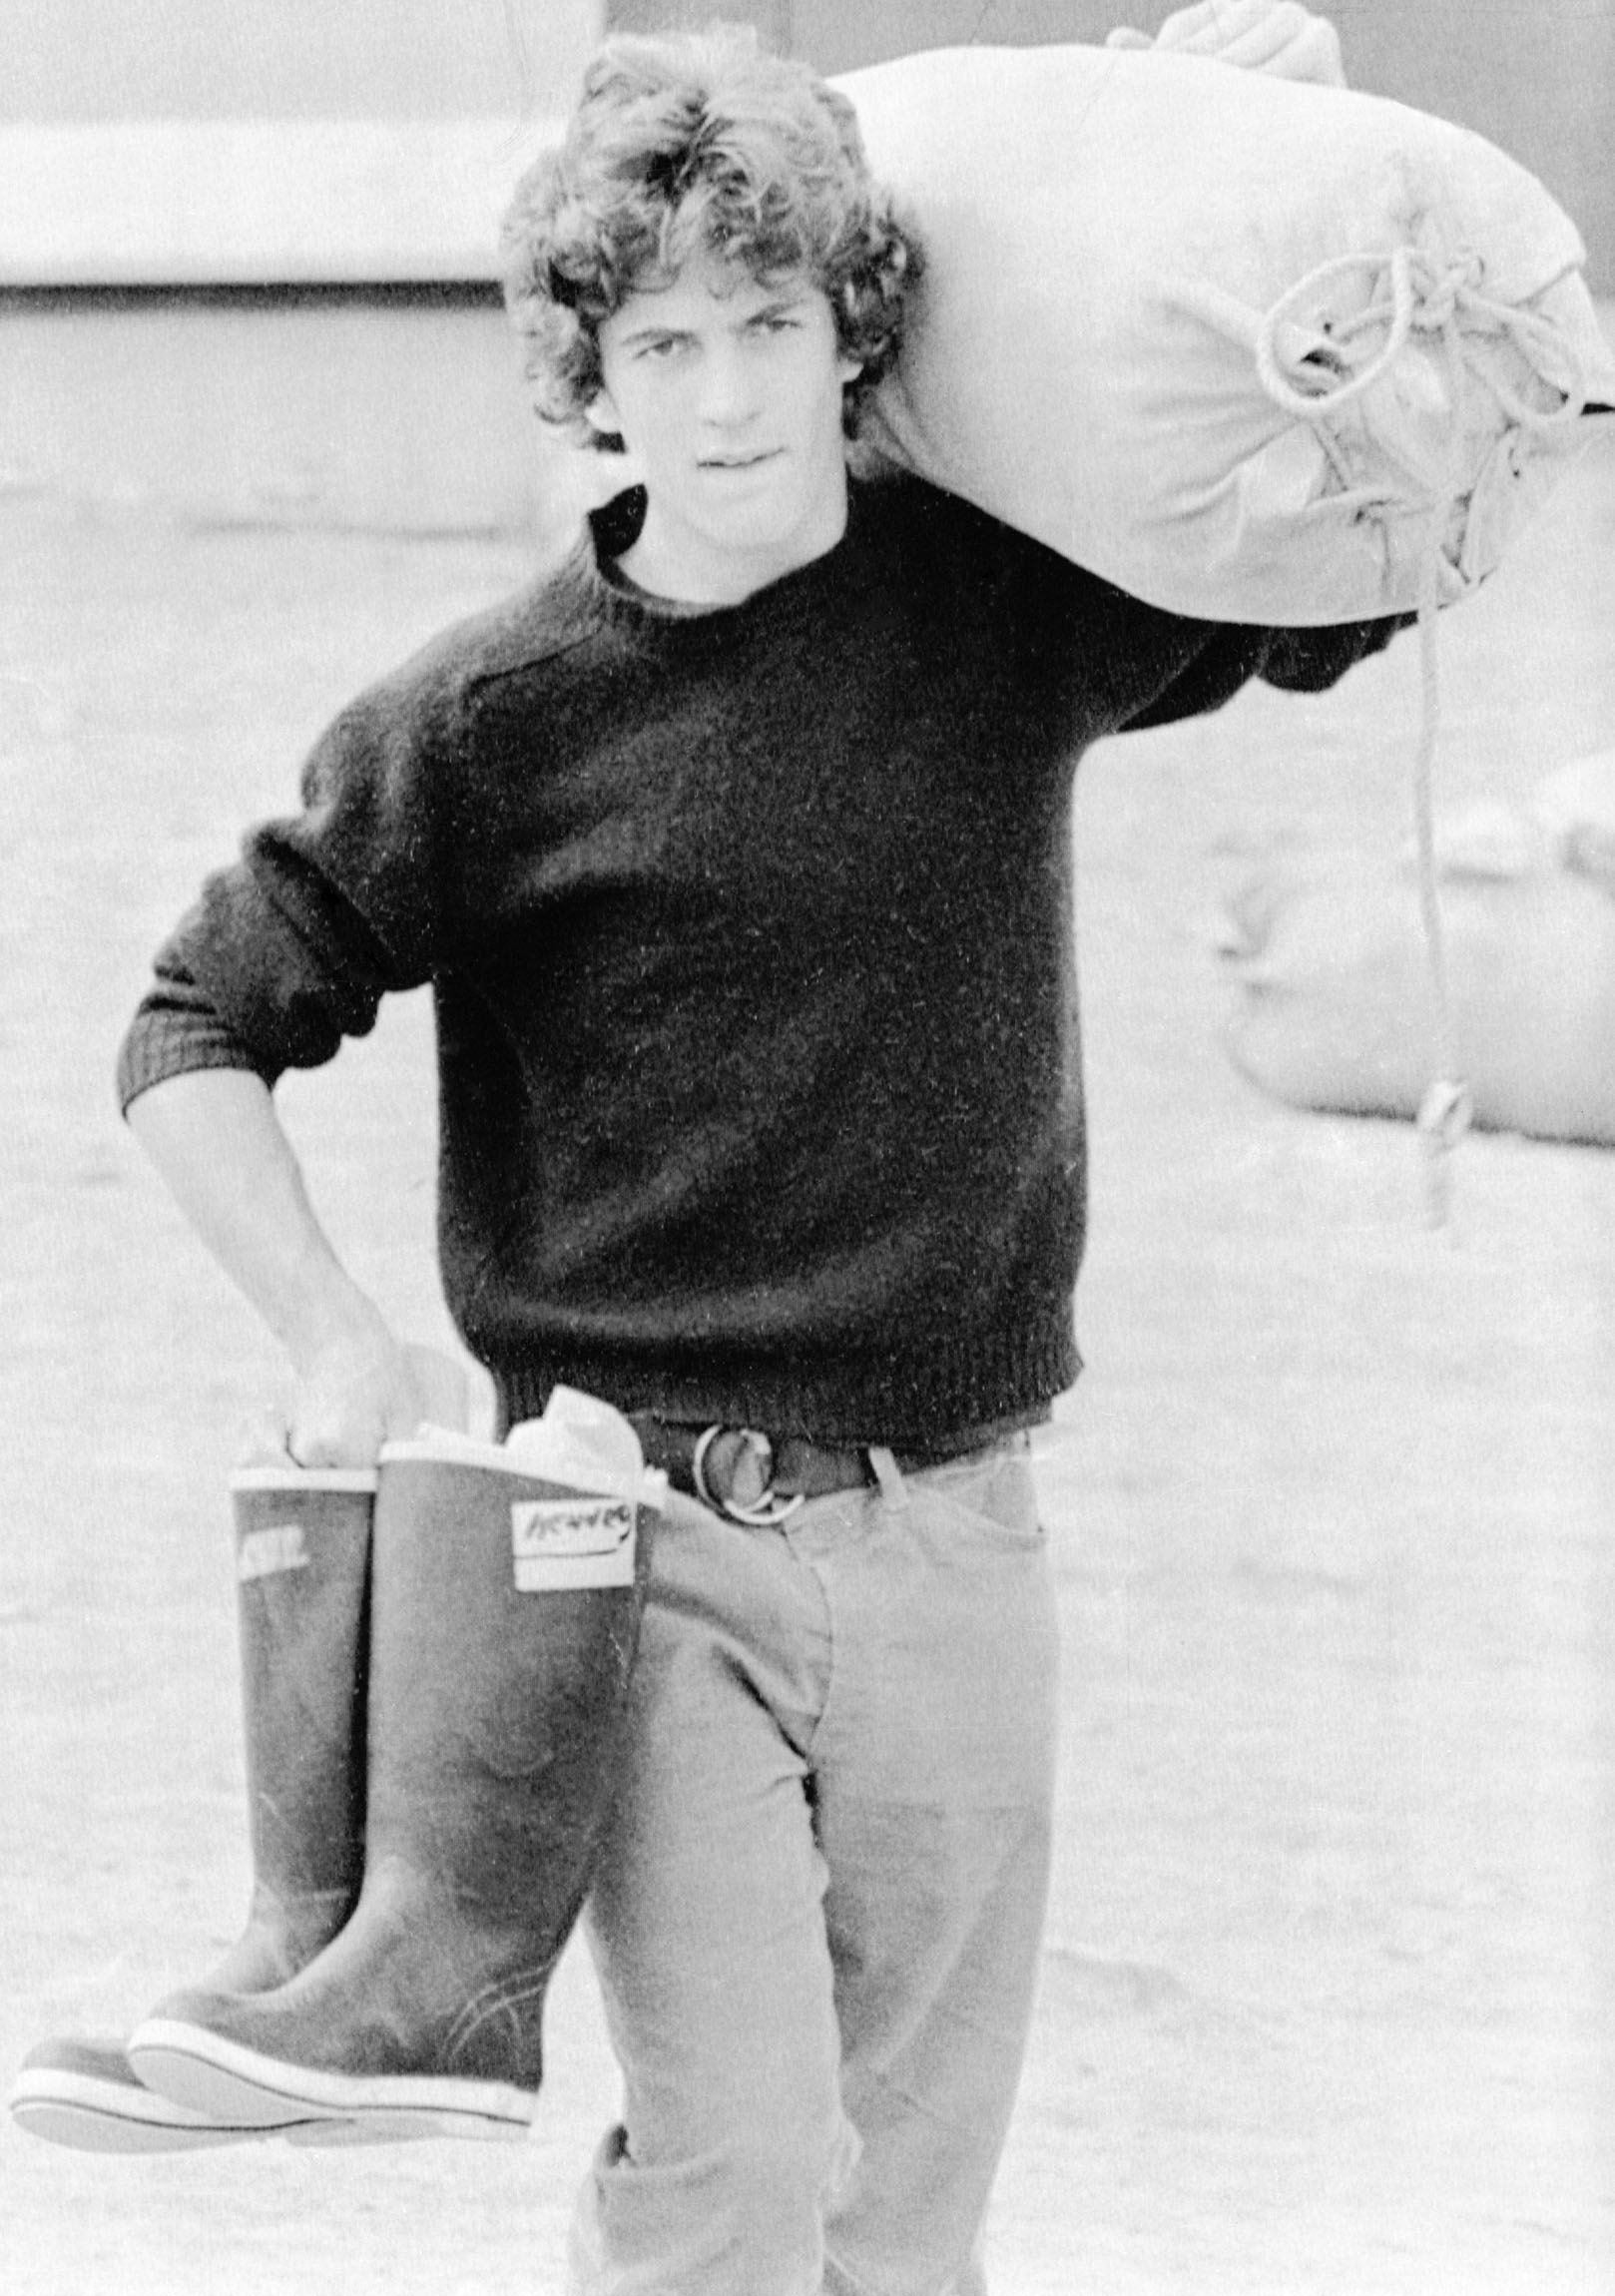 John F. Kennedy Jr. carries seabag and boots as he heads down to the dock in Rockland, Maine on July 12, 1977.